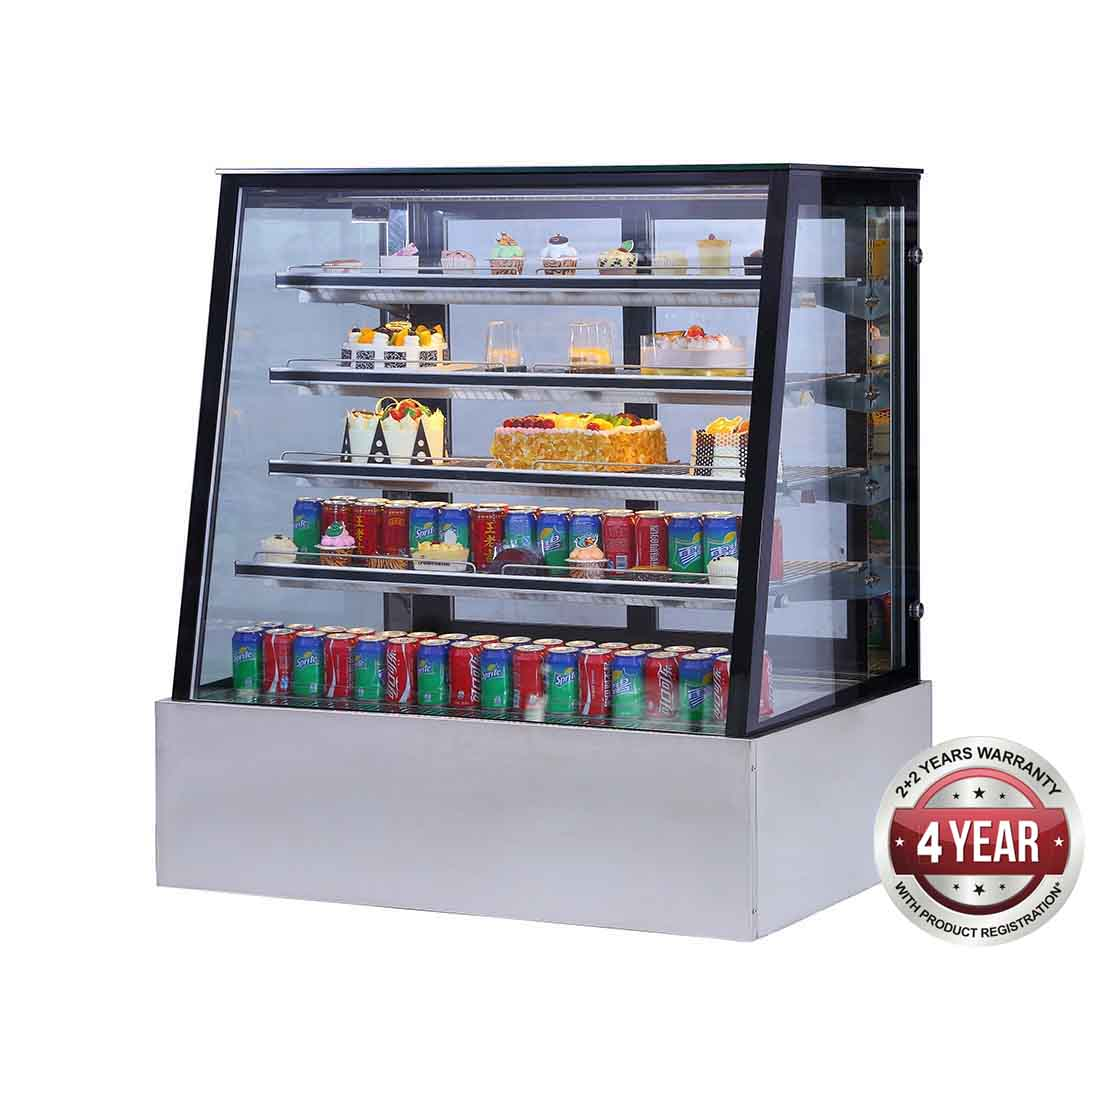 SLP840C Bonvue Deluxe Chilled Display Cabinet 1200x800x1350